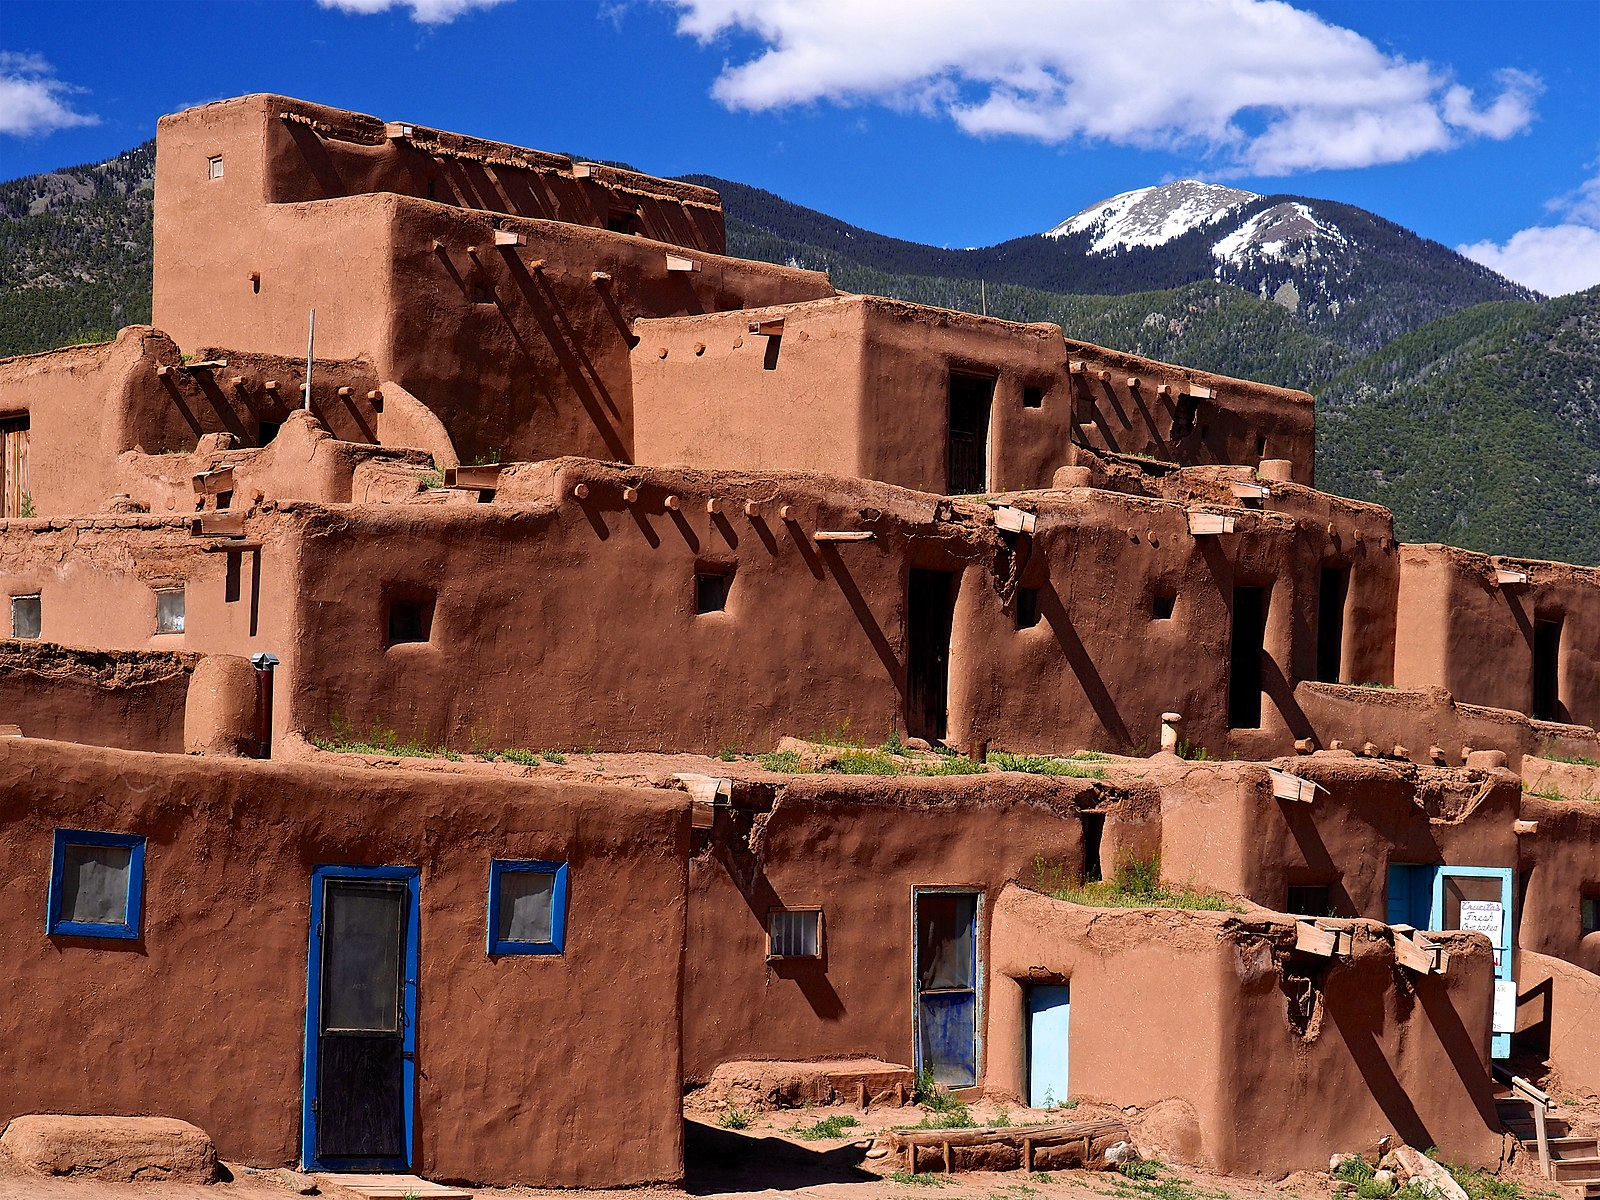 Taos Pueblo in Taos, New Mexico, a multilevel adobe dwelling and one of the most famous examples of Pueblo architecture